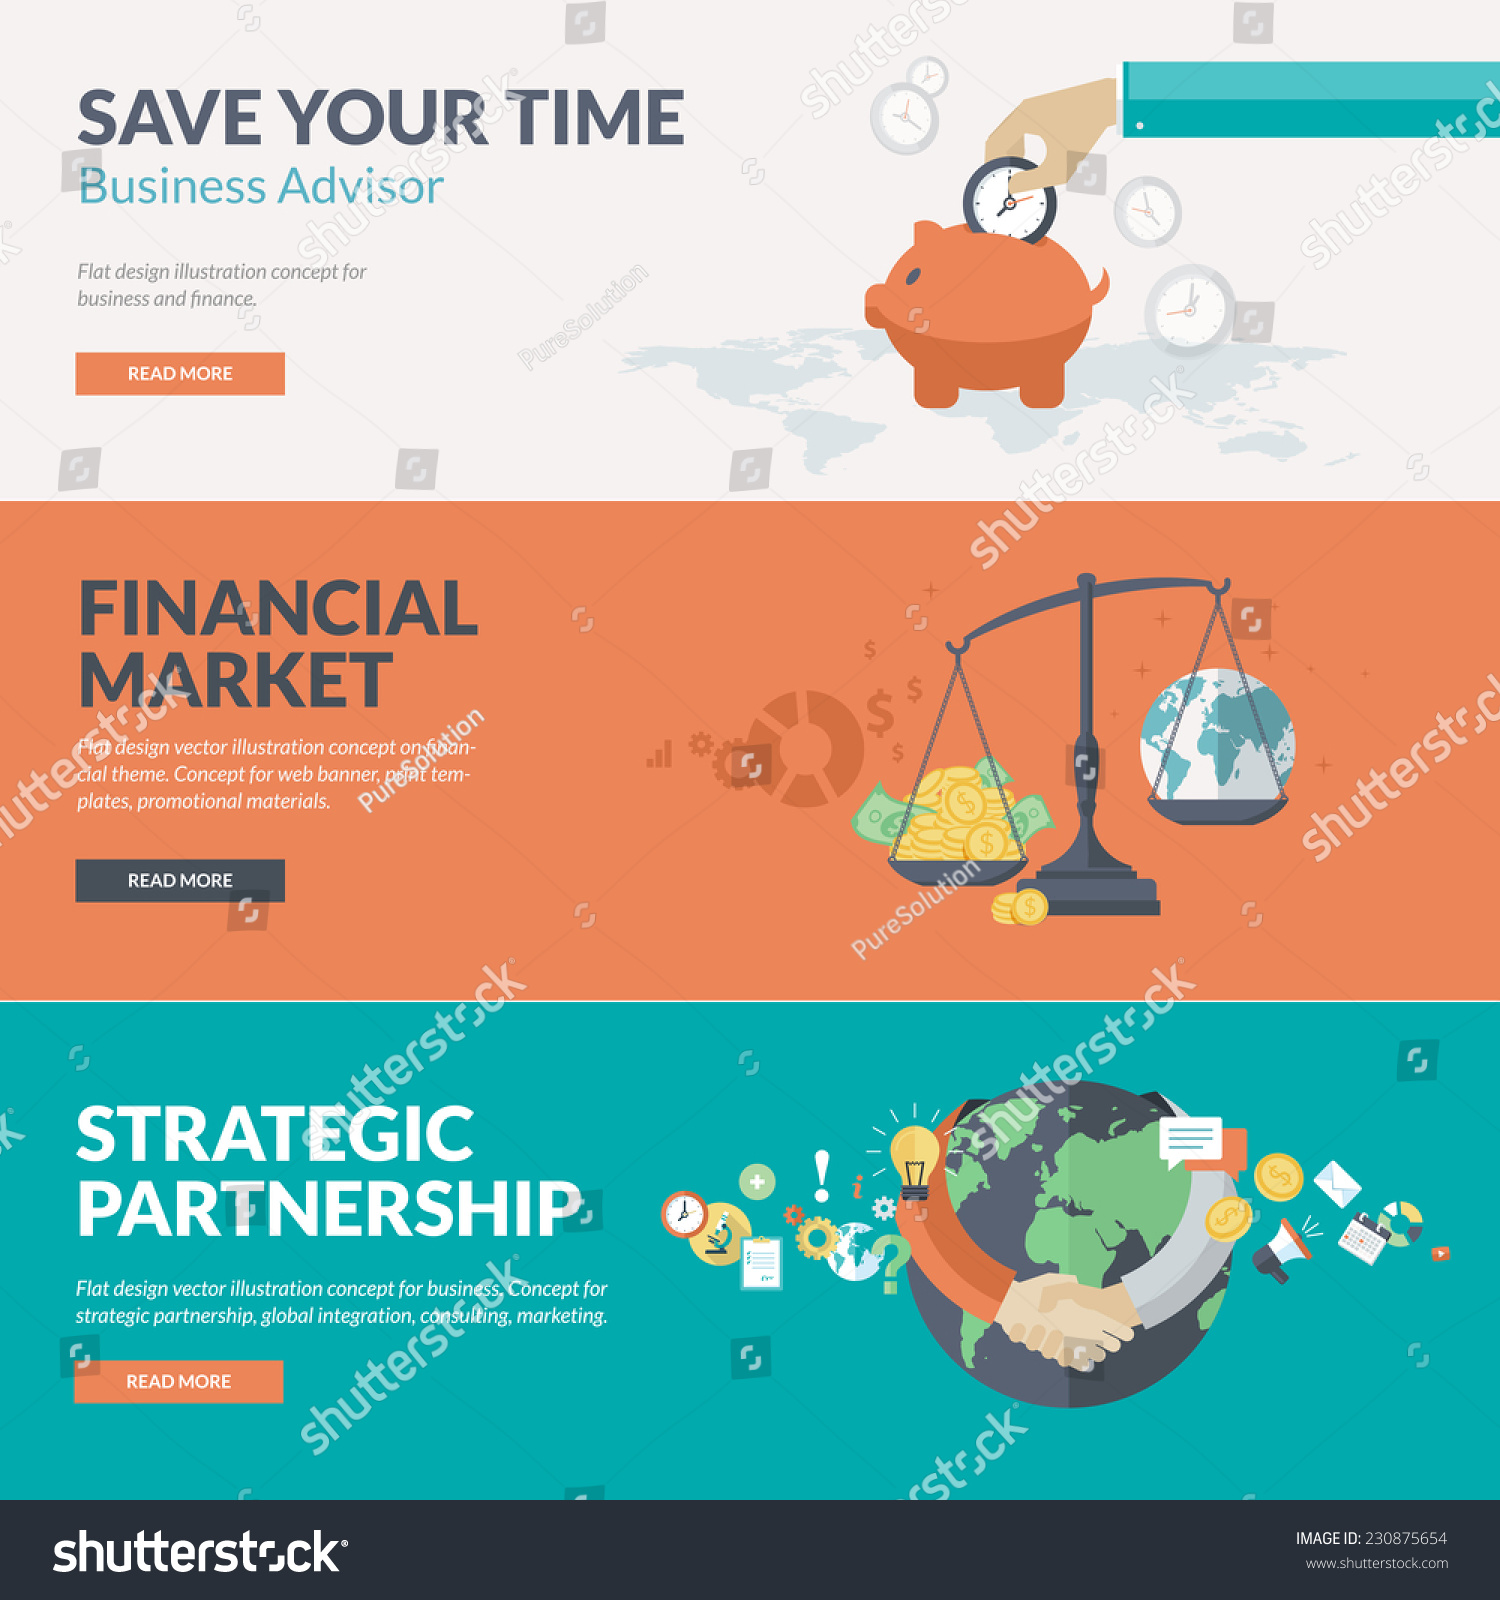 Flat design concepts business finance consulting stock for Custom marketing materials